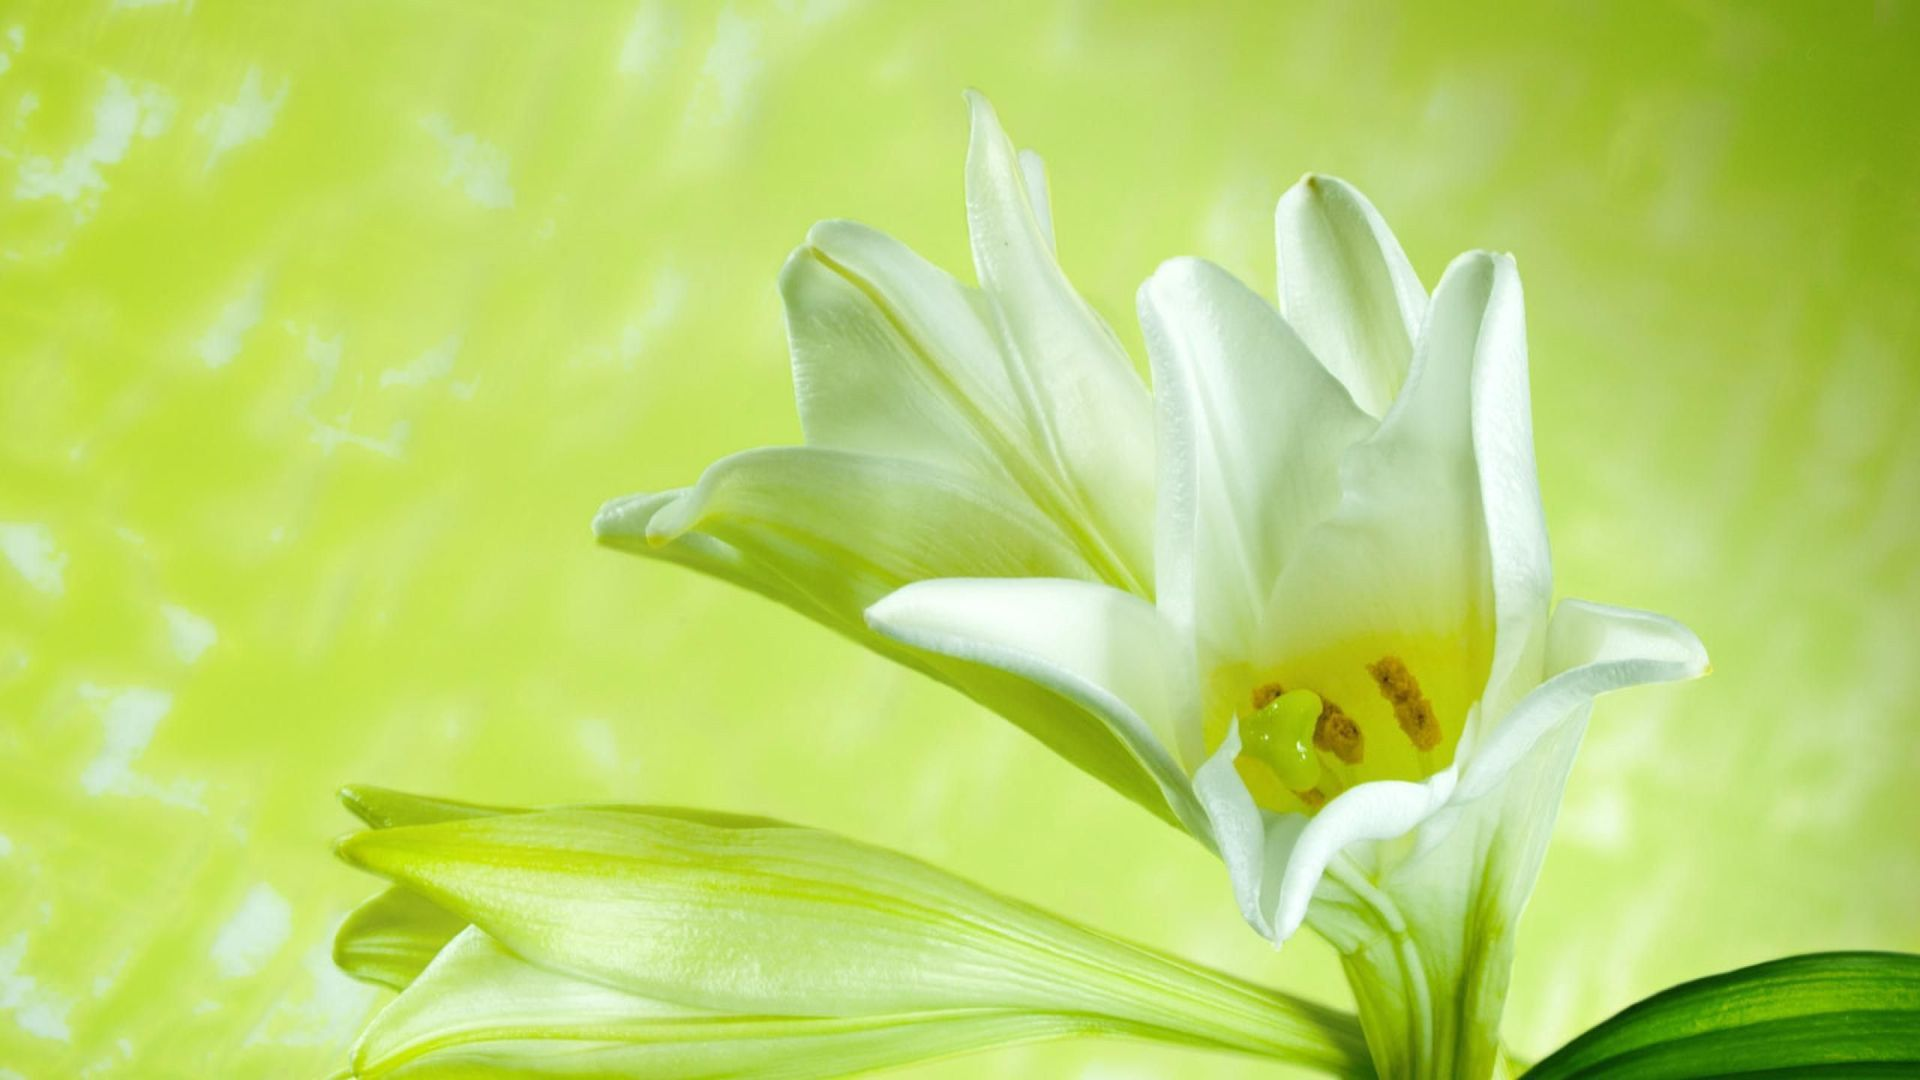 Best images about lily flower on pinterest flower wallpaper 1920 best images about lily flower on pinterest flower wallpaper 19201200 lily flower images wallpapers 51 wallpapers adorable wallpapers izmirmasajfo